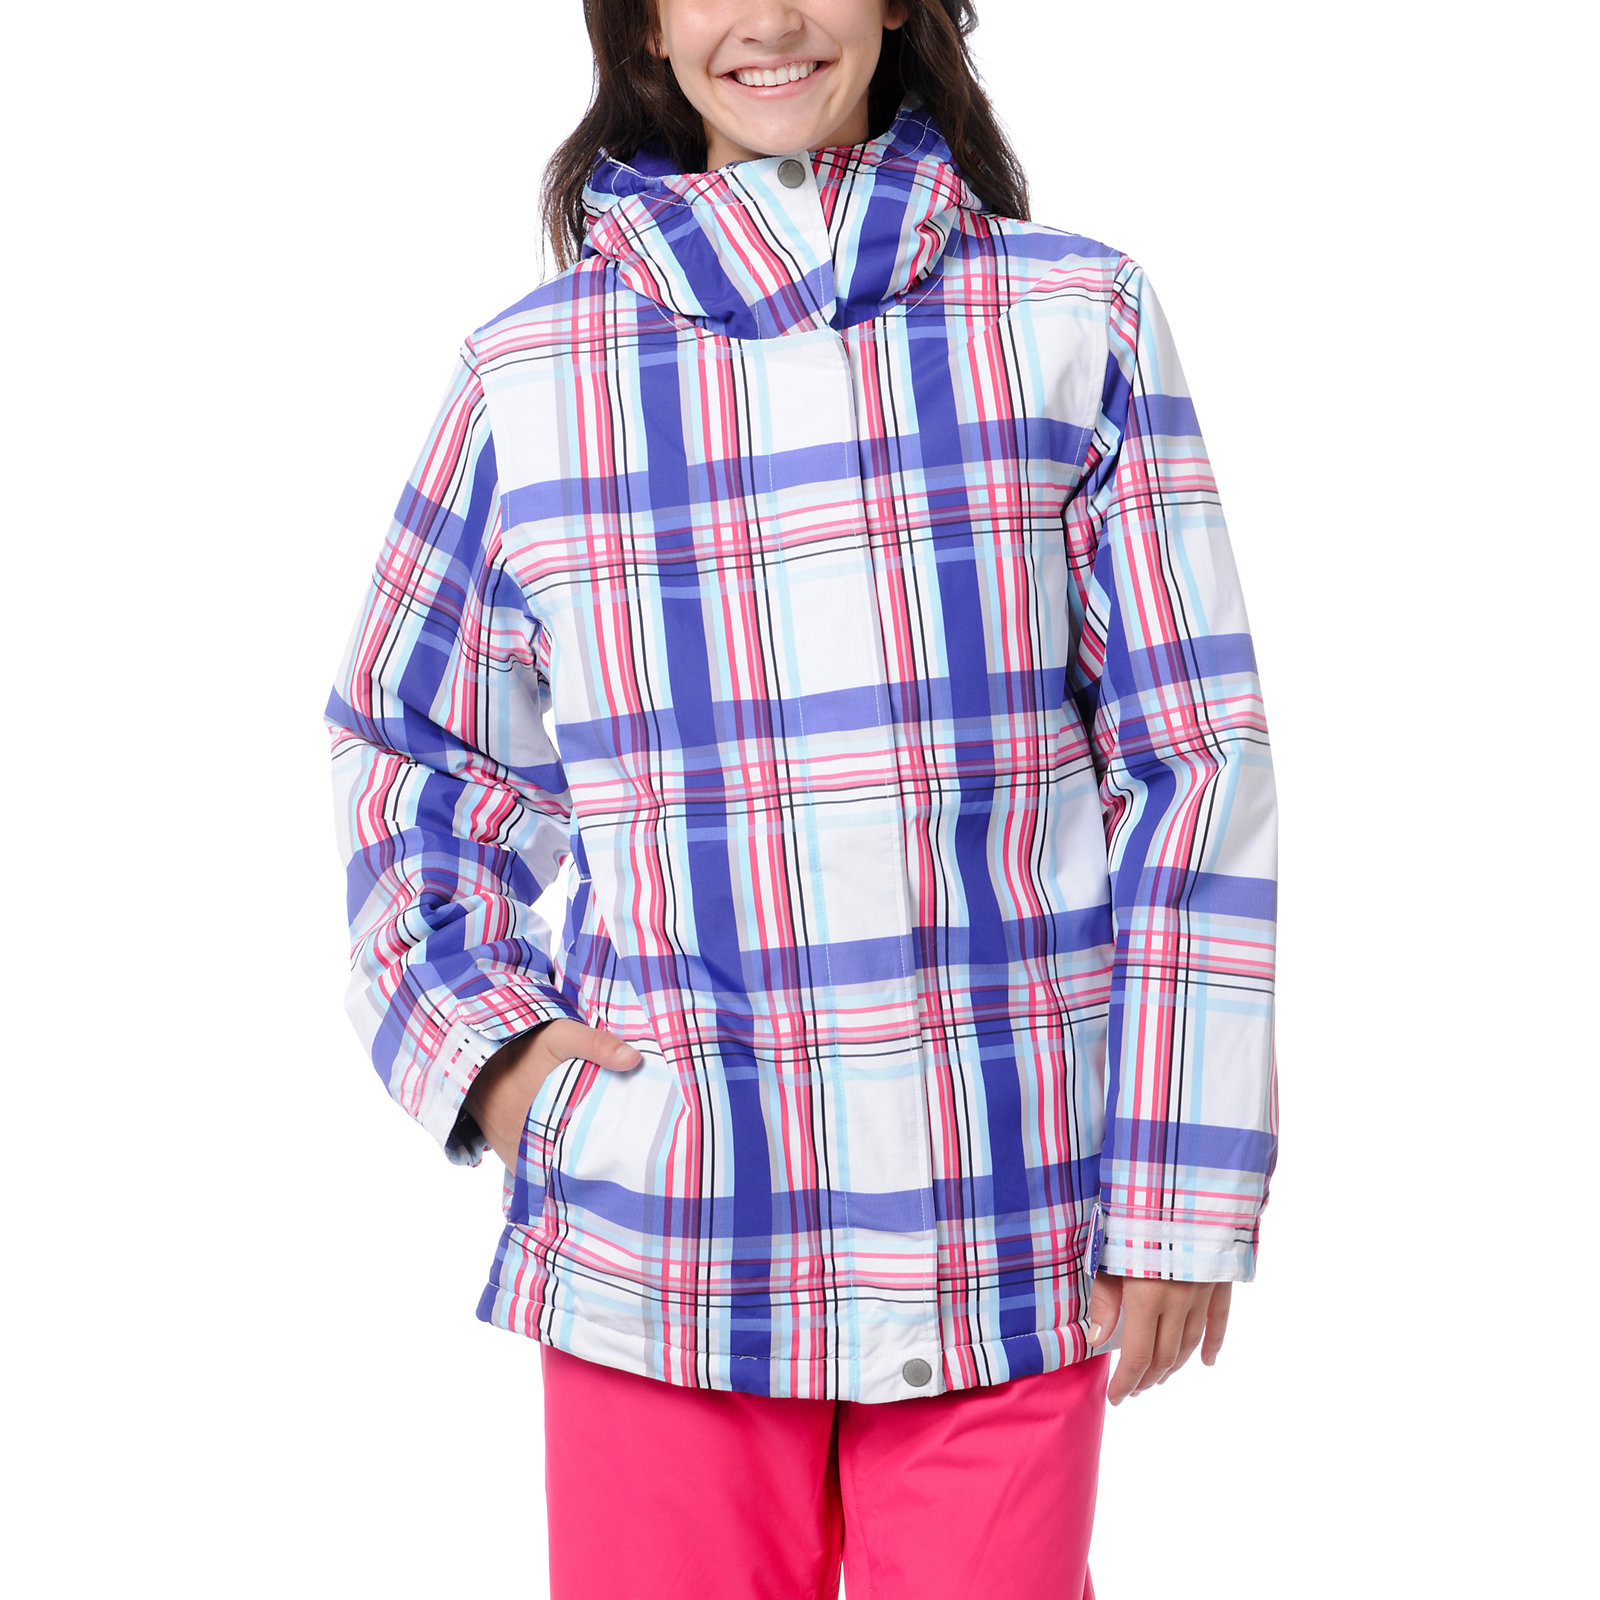 Snowboard Empyre Girls Palisade White & Purple 10K Snowboard Jacket - New 2013